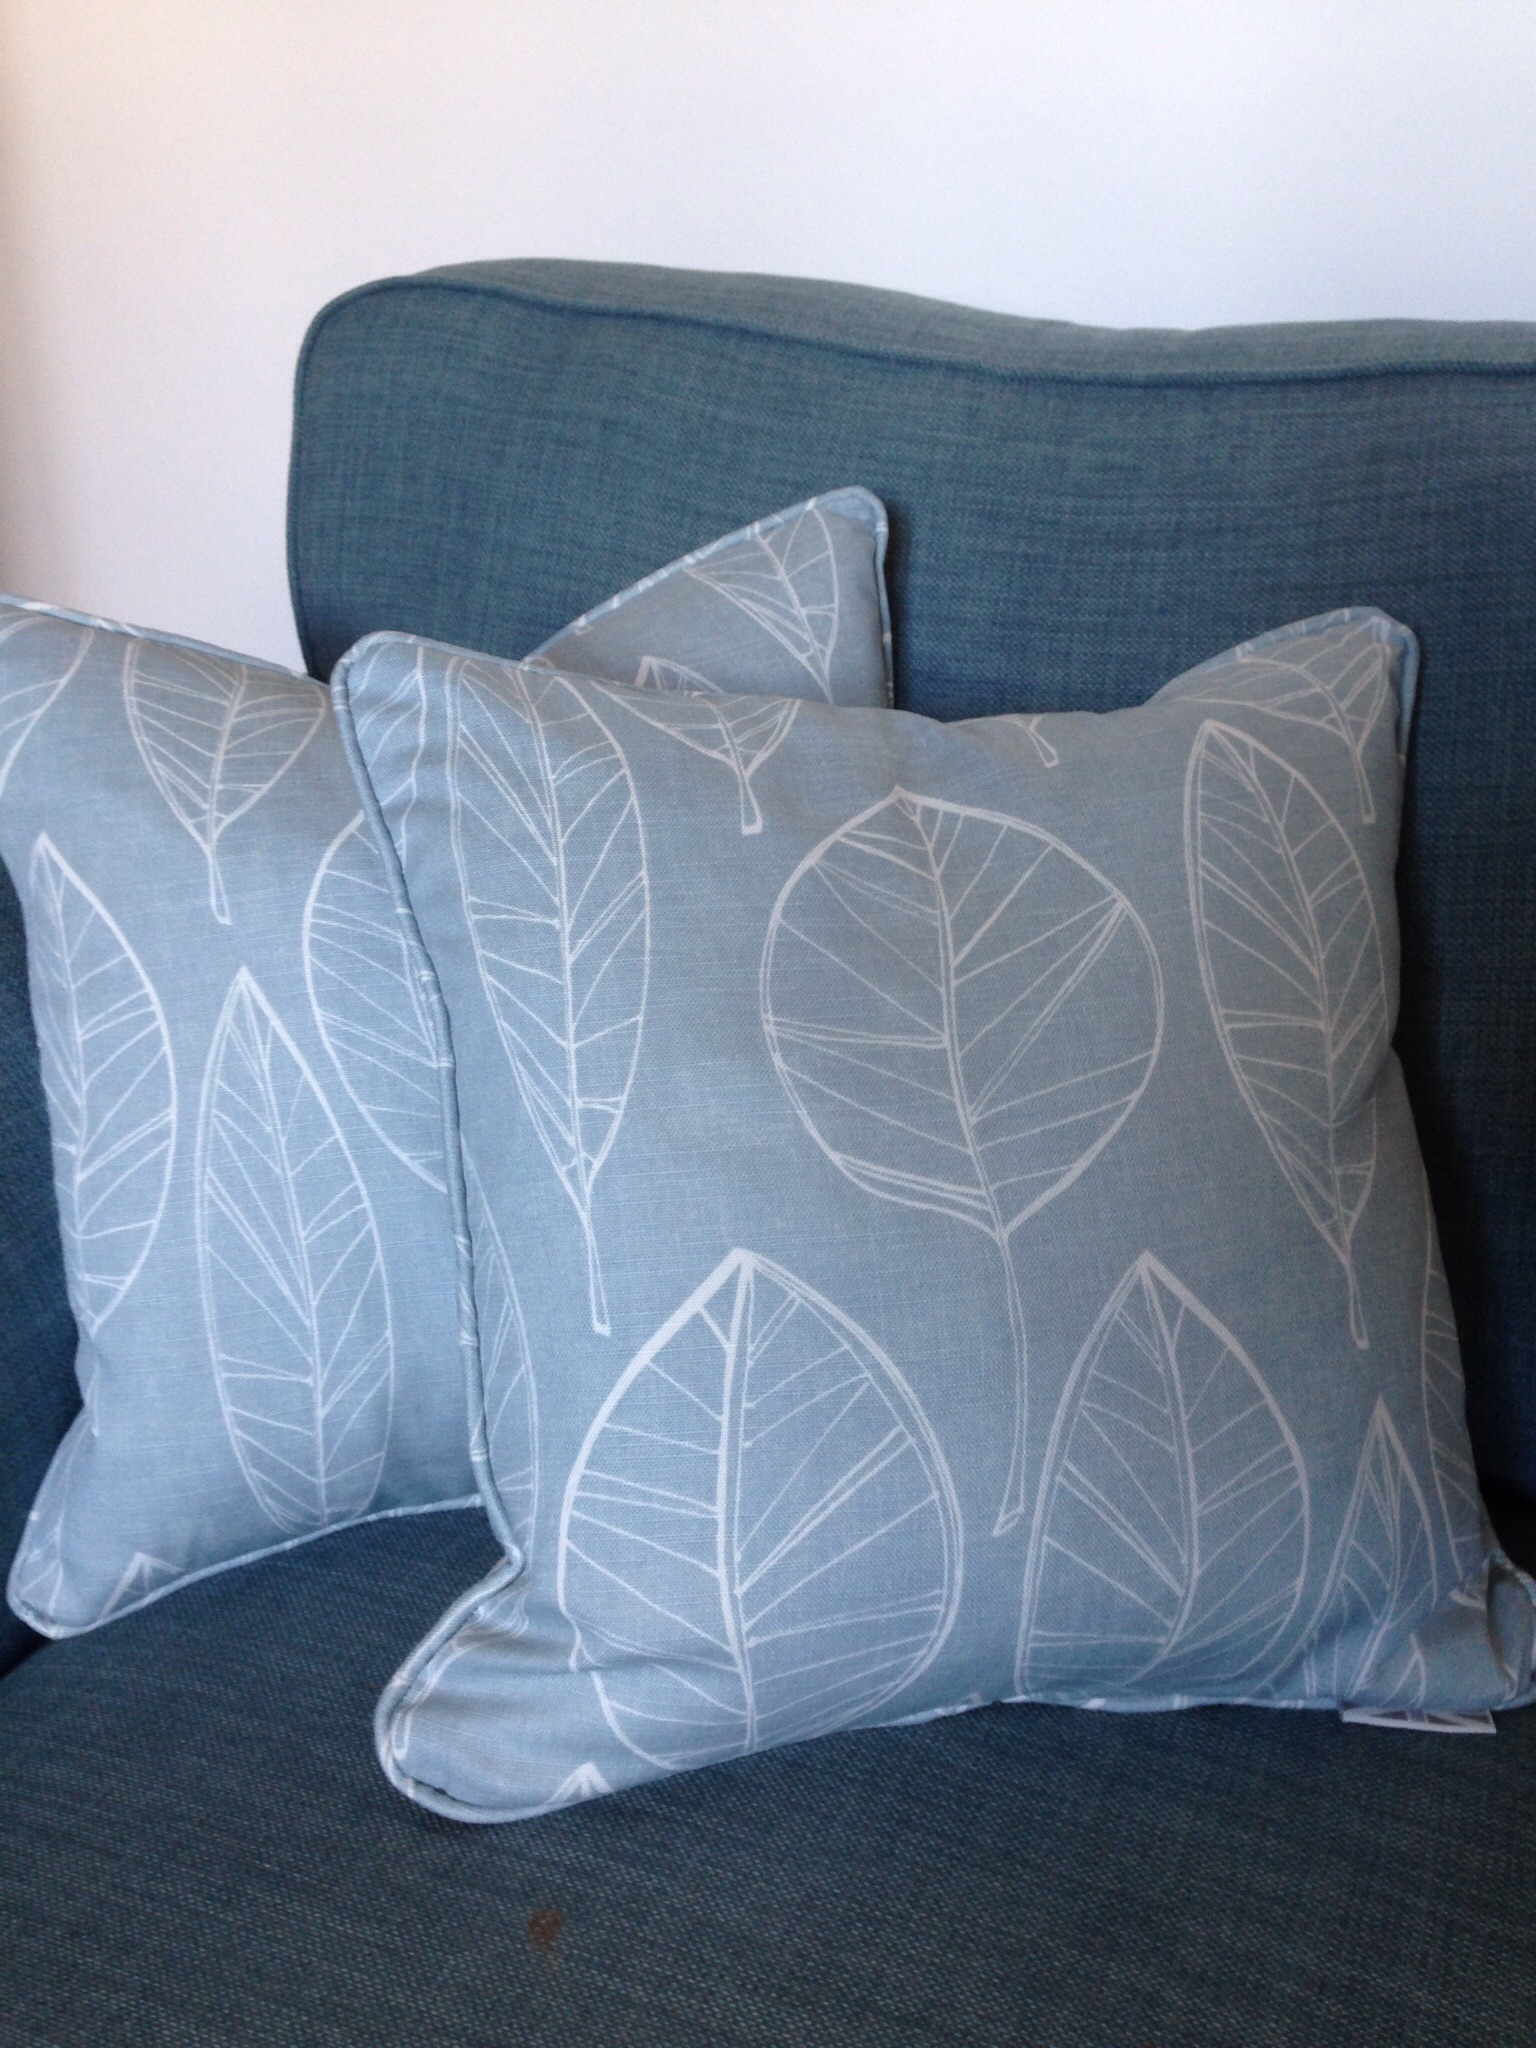 A bit of left over fabric used for two scatter cushions on the sofa